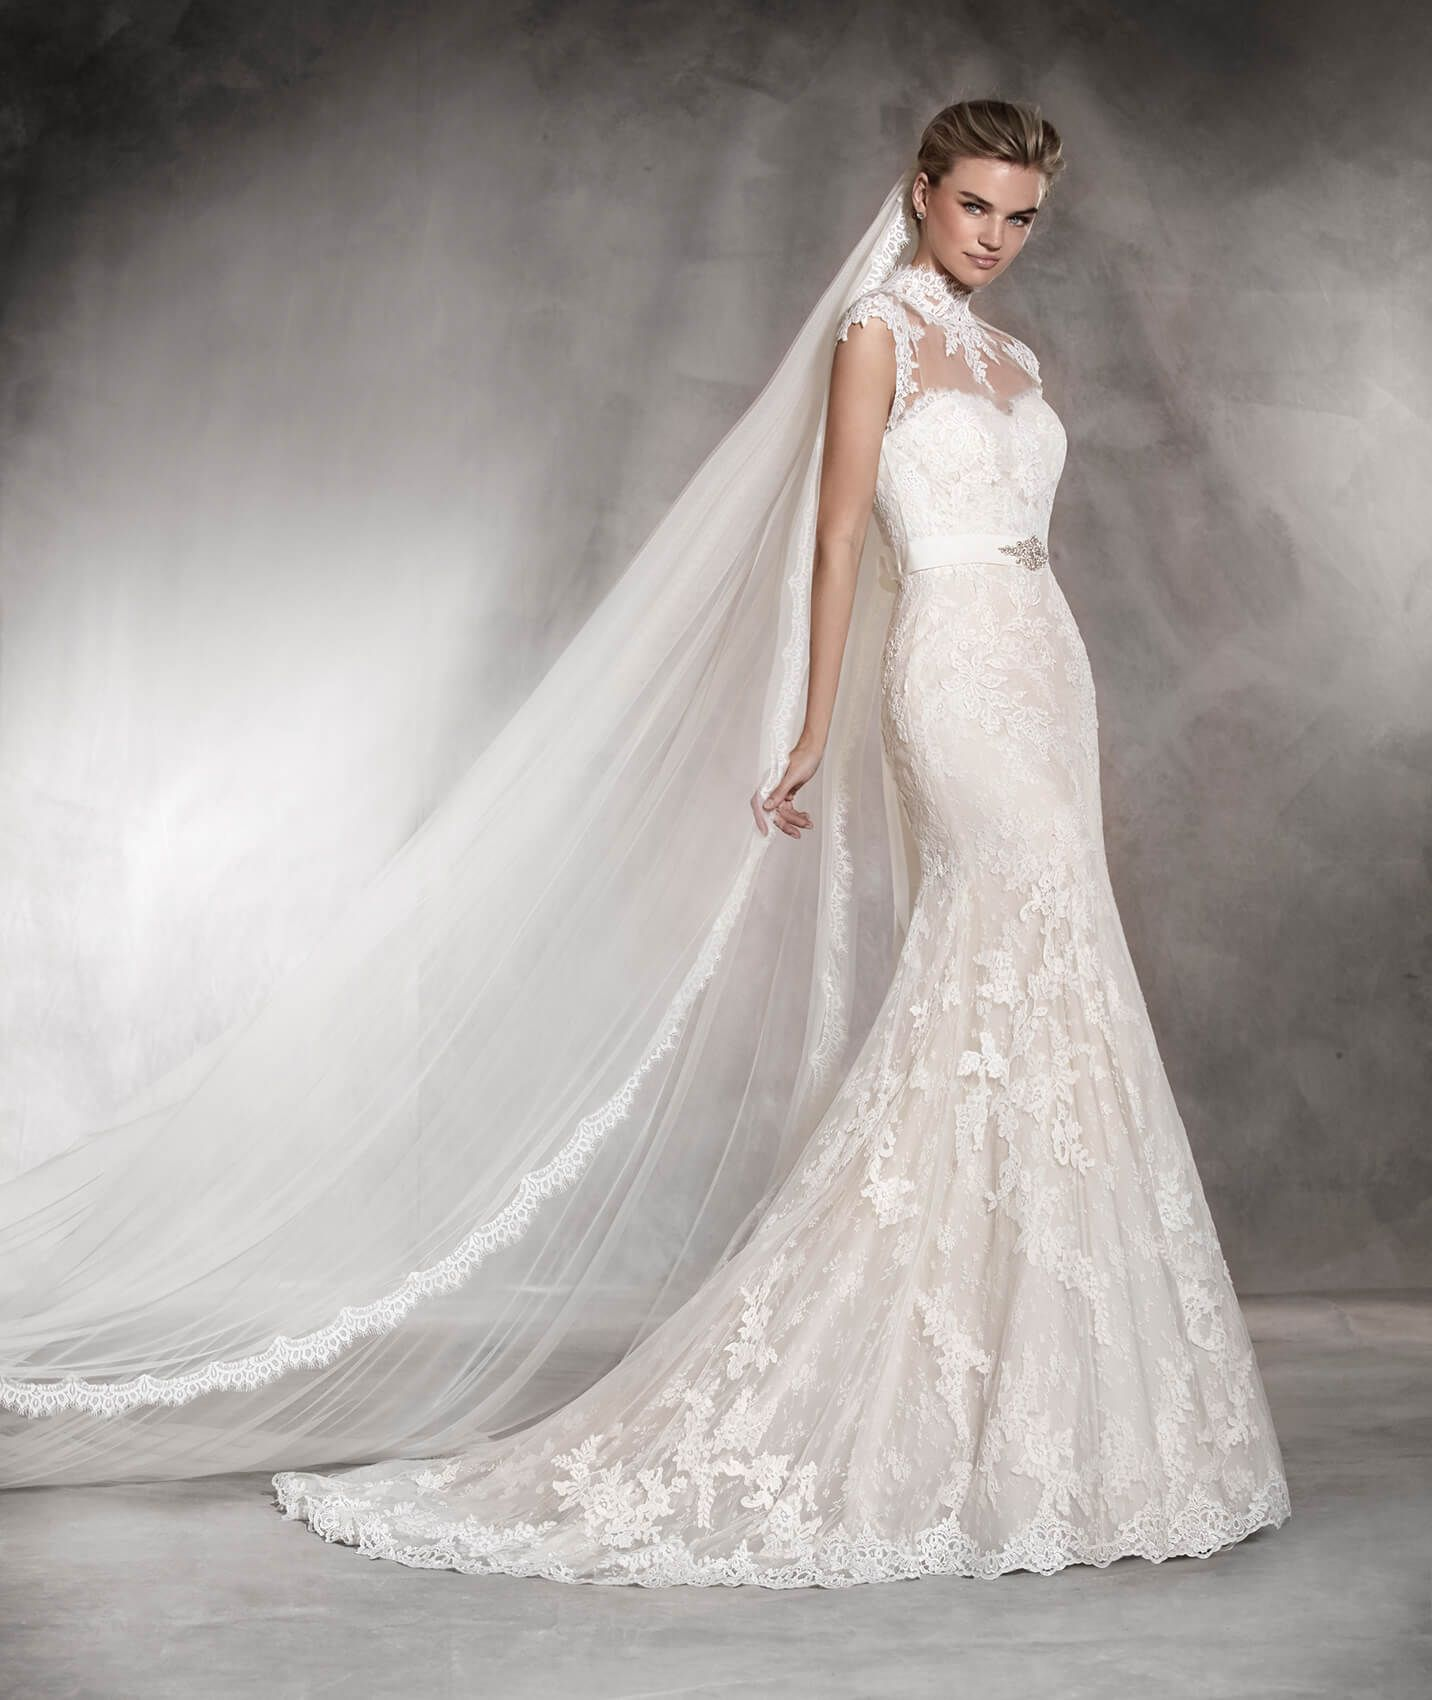 Andrea tulle wedding dress with lace gemstones and a sweetheart